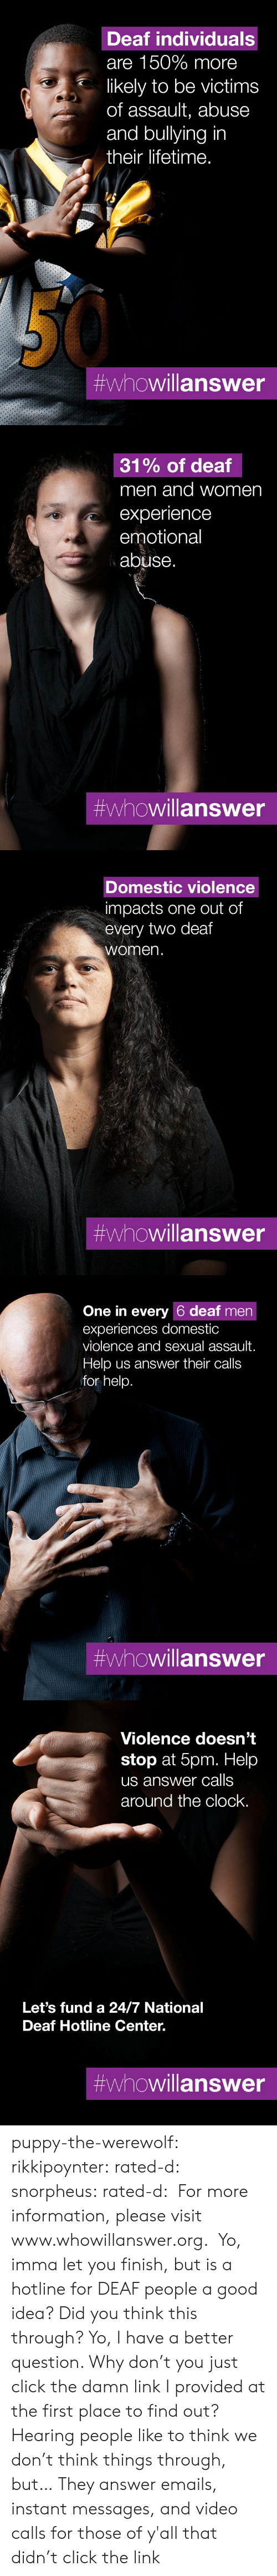 People Like: Deaf individuals  are 150% more  likely to be victims  of assault, abuse  and bullying in  their lifetime.  #whowillanswer   31% of deaf  men and women  experience  emotional  abuse.  #whowillanswer   Domestic violence  impacts one out of  every two deaf  women.  #whowillanswer   One in every 6 deaf men  experiences domestic  violence and sexual assault.  Help us answer their calls  for help.  #whowillanswer   Violence doesn't  stop at 5pm. Help  us answer calls  around the clock.  Let's fund a 24/7 National  Deaf Hotline Center.  puppy-the-werewolf: rikkipoynter:  rated-d:  snorpheus:  rated-d:   For more information, please visit www.whowillanswer.org.   Yo, imma let you finish, but is a hotline for DEAF people a good idea? Did you think this through?  Yo, I have a better question. Why don't you just click the damn link I provided at the first place to find out?     Hearing people like to think we don't think things through, but…   They answer emails, instant messages, and video calls for those of y'all that didn't click the link